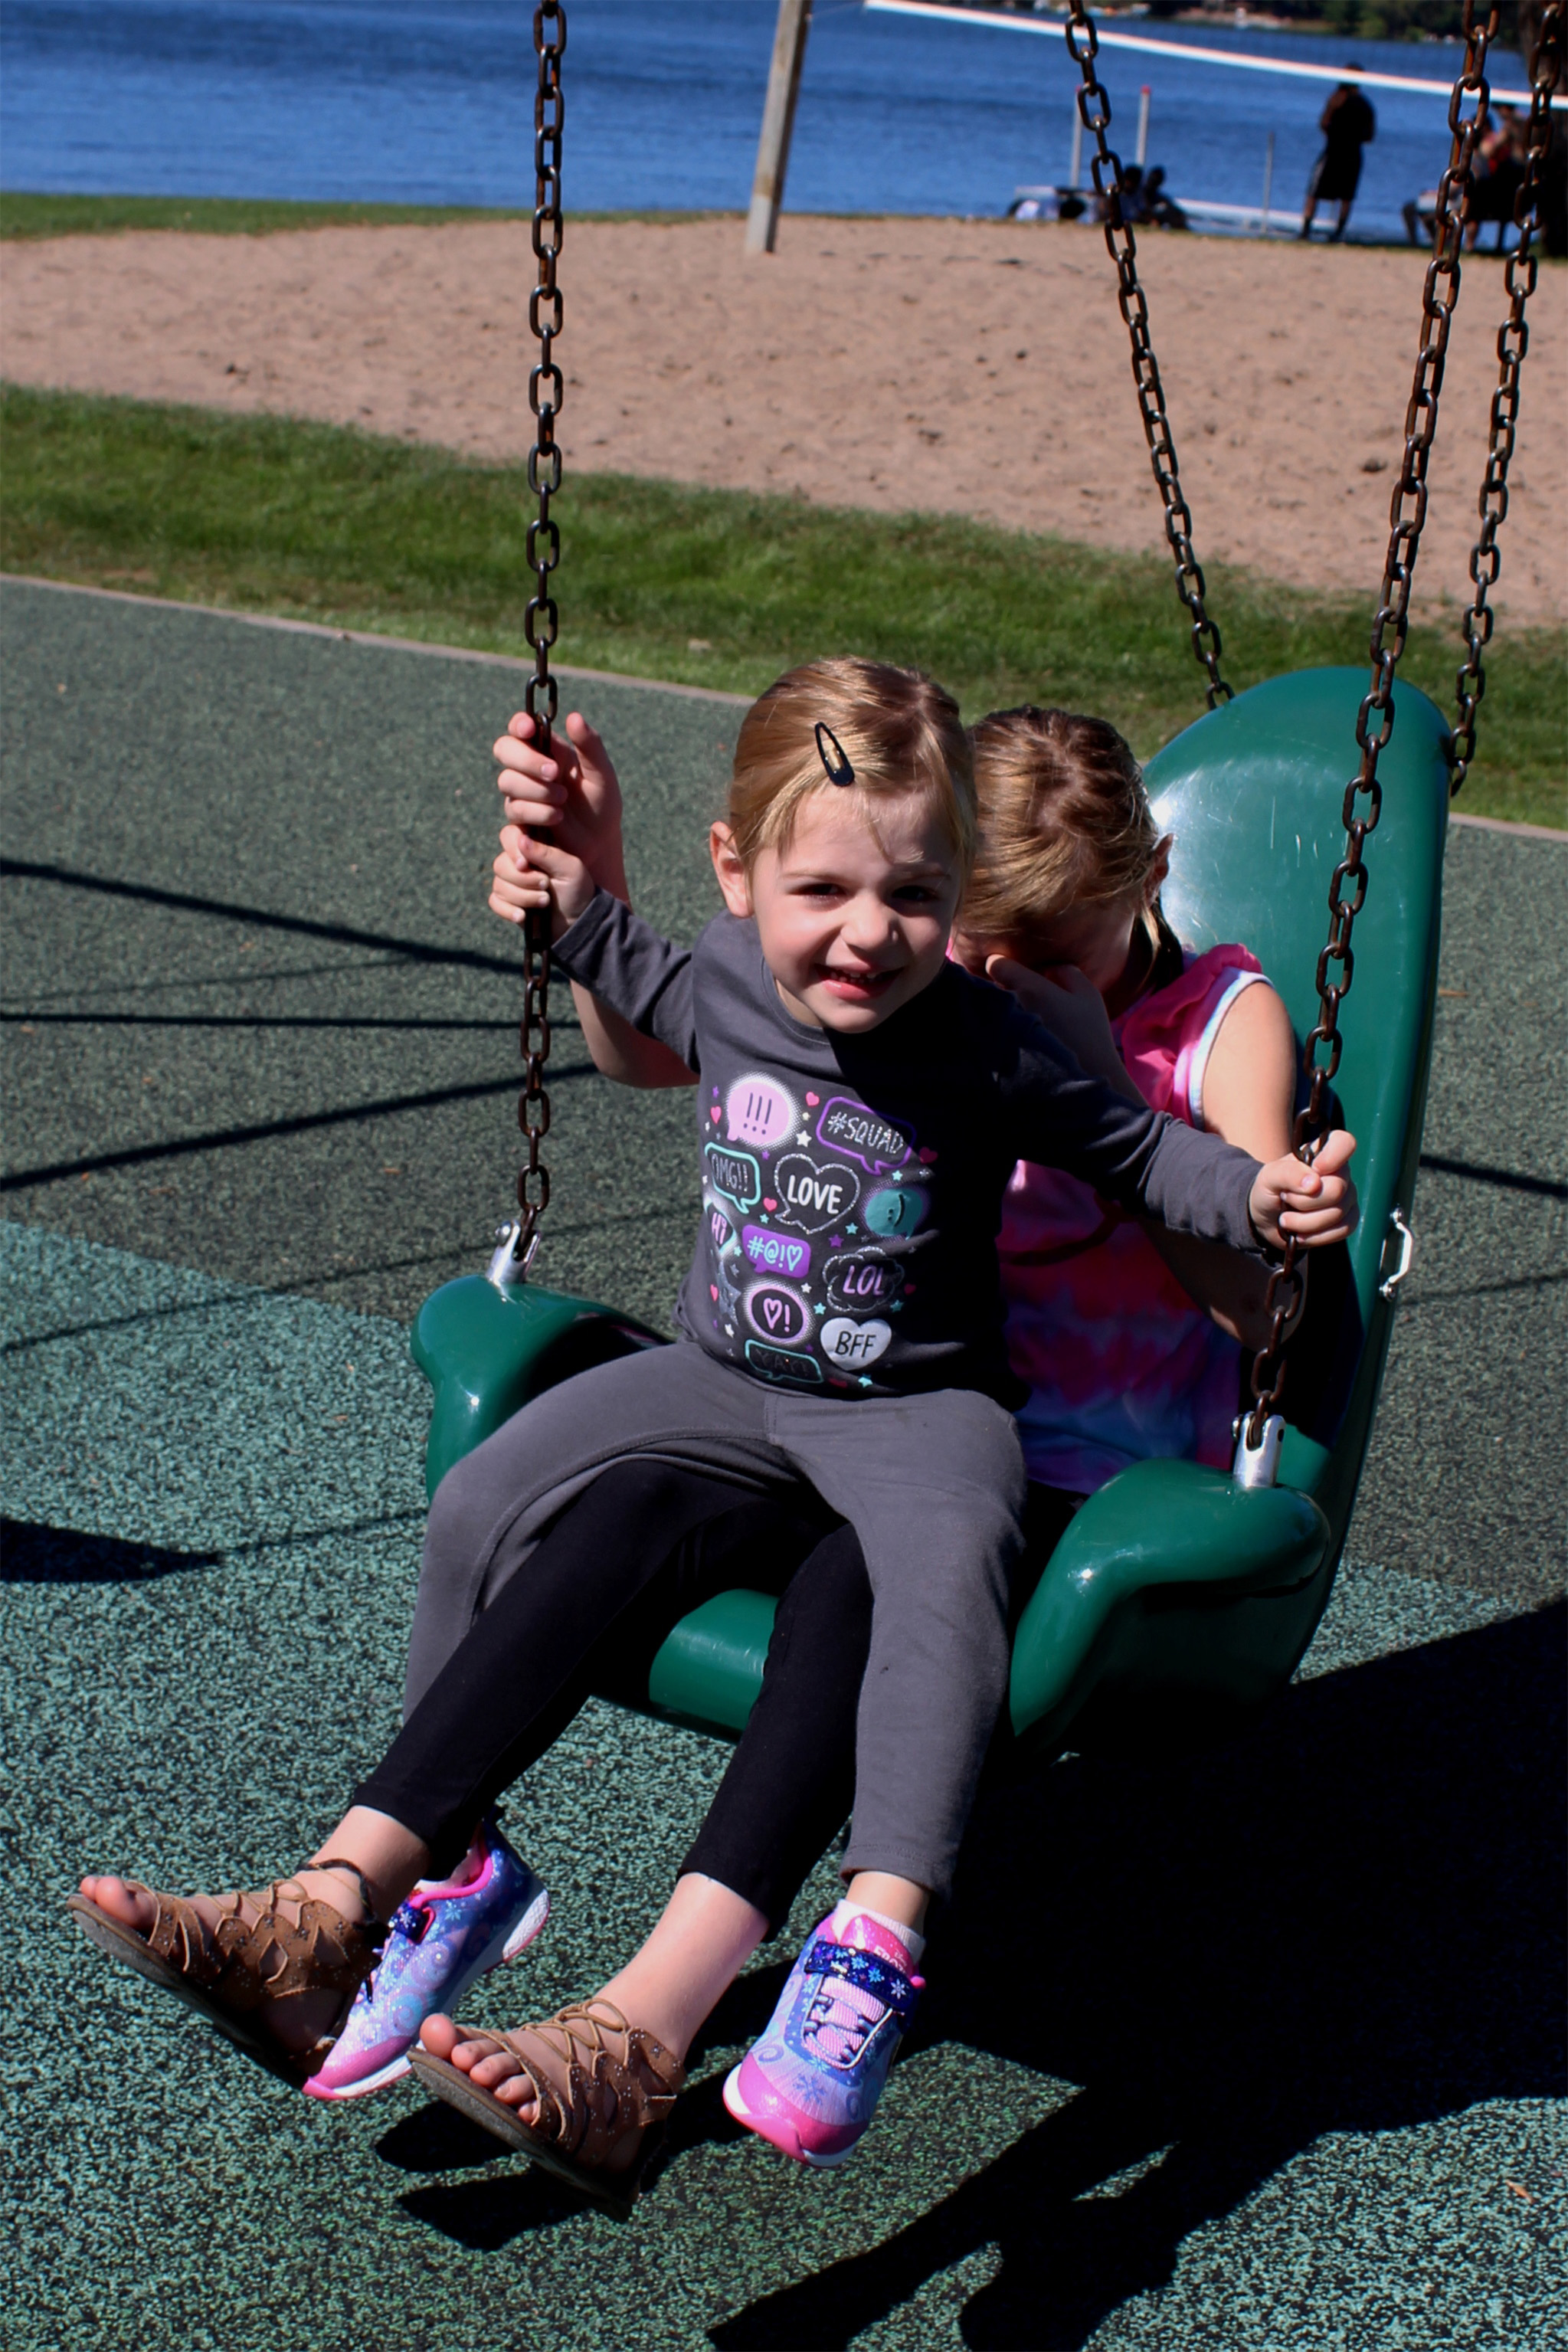 Sisters Ava and Addyline enjoy swinging together at Torpy Park in Minocqua. Kim Johnson photo